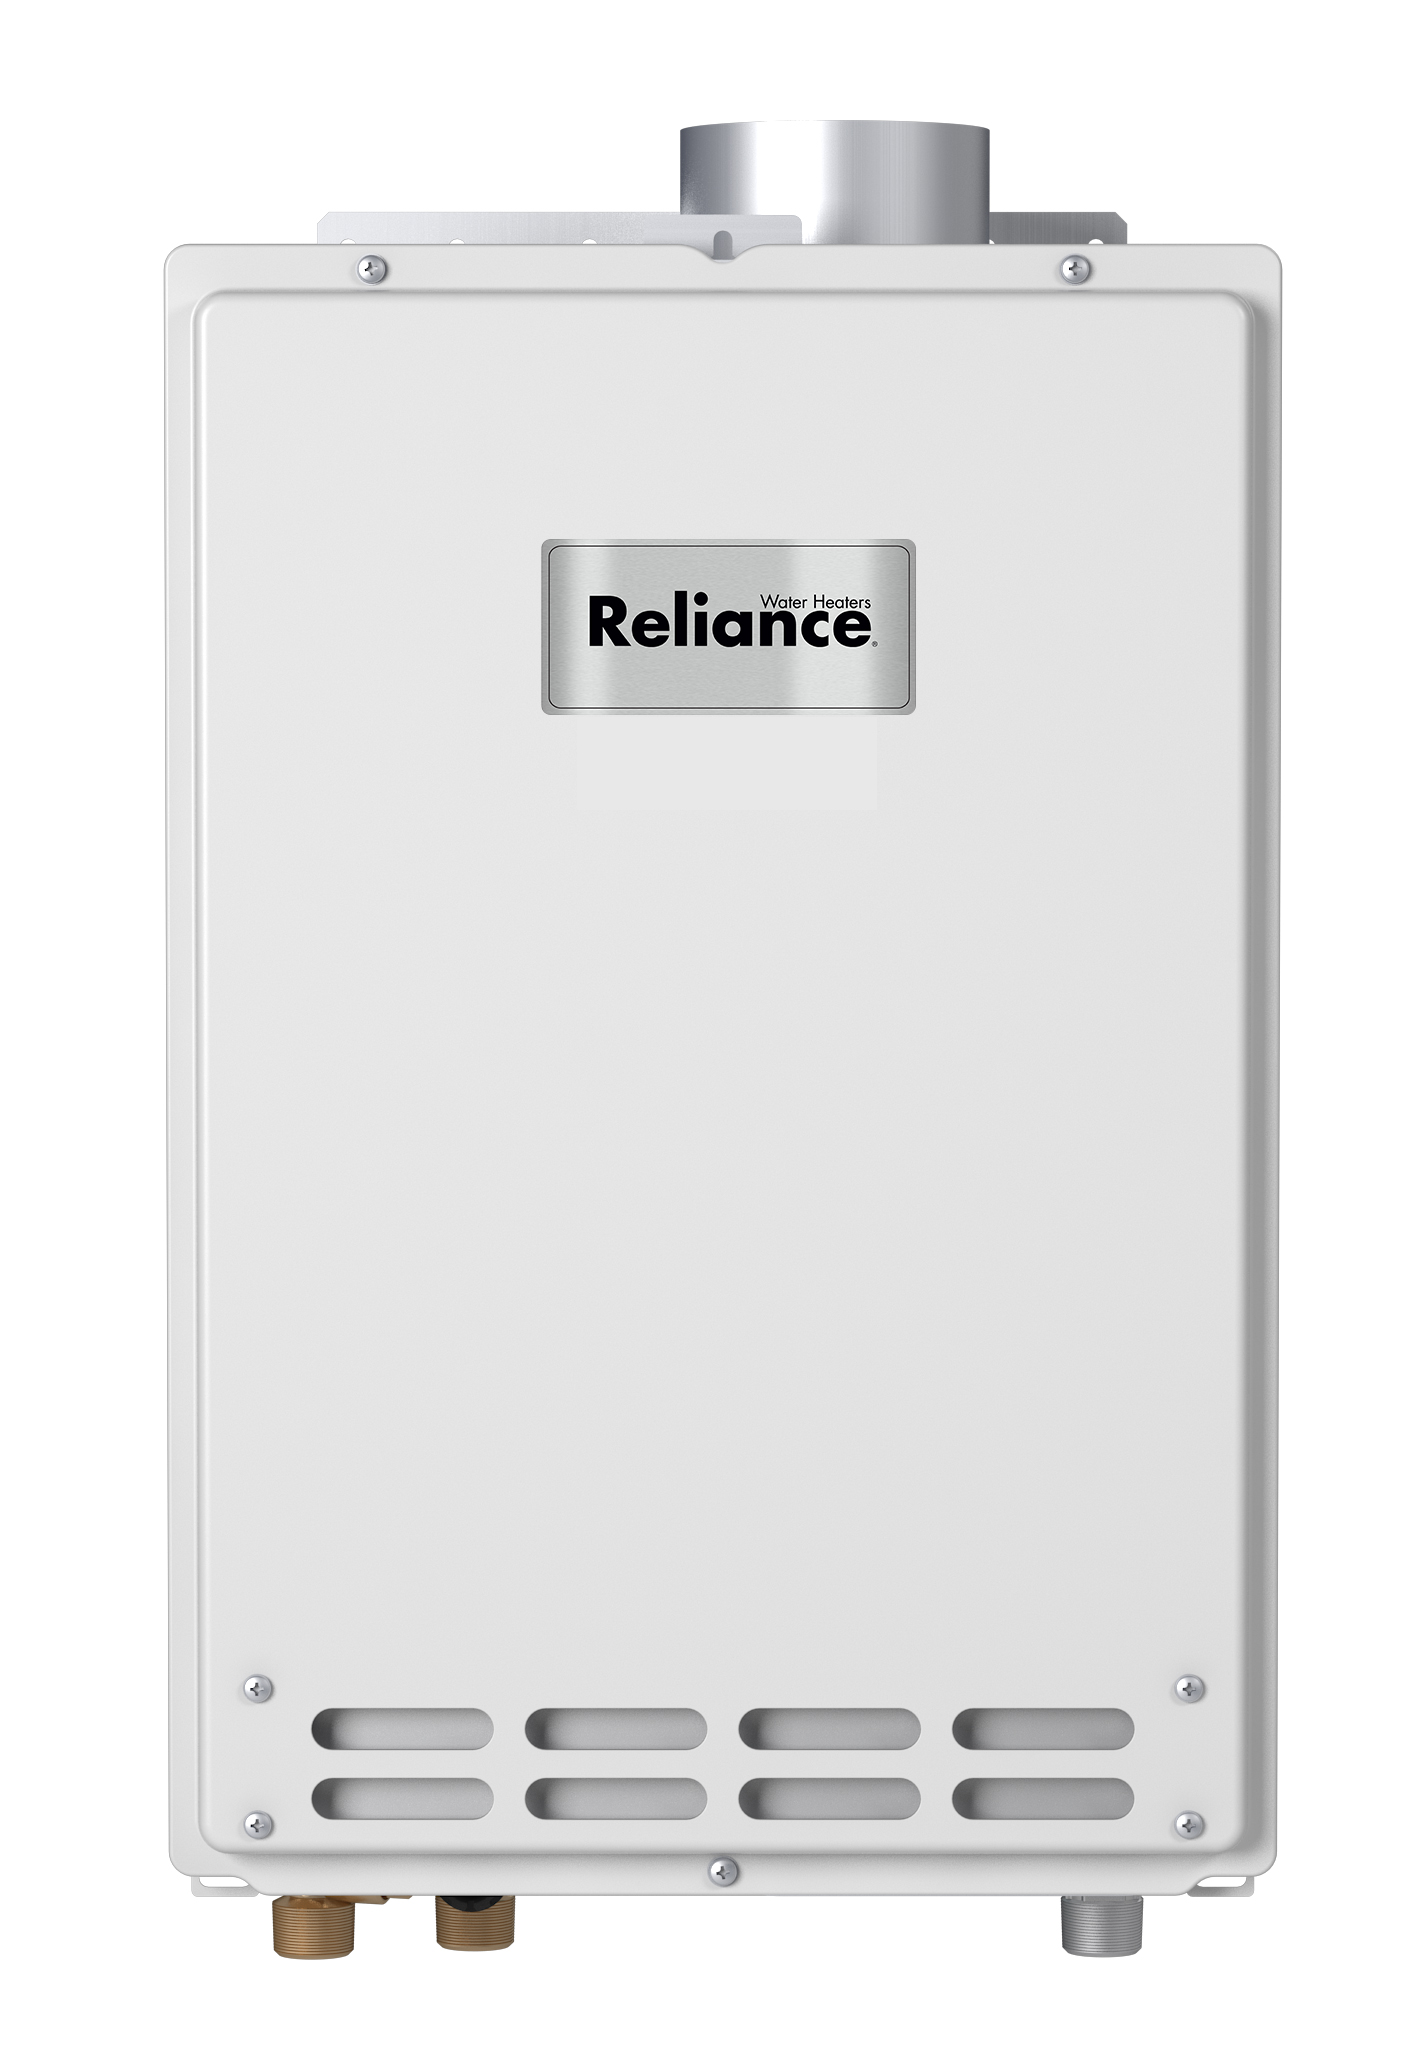 Wiring Diagram For Reliance Water Heater : Gkrt reliance water heater wiring diagram best site